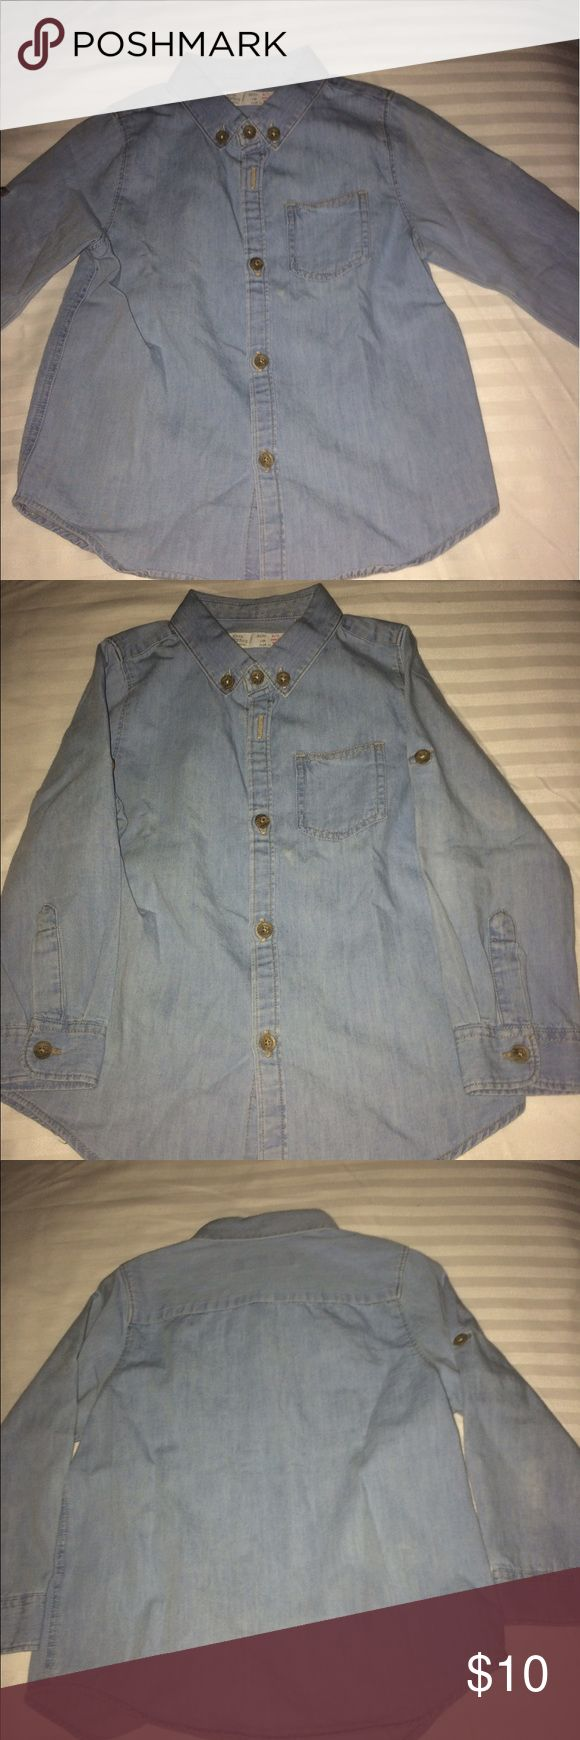 Zara Chambray Shirt Excellent Condition Zara Chambray Shirt. Can be worn with army fatigue, white or denim jeans. Zara Shirts & Tops Button Down Shirts